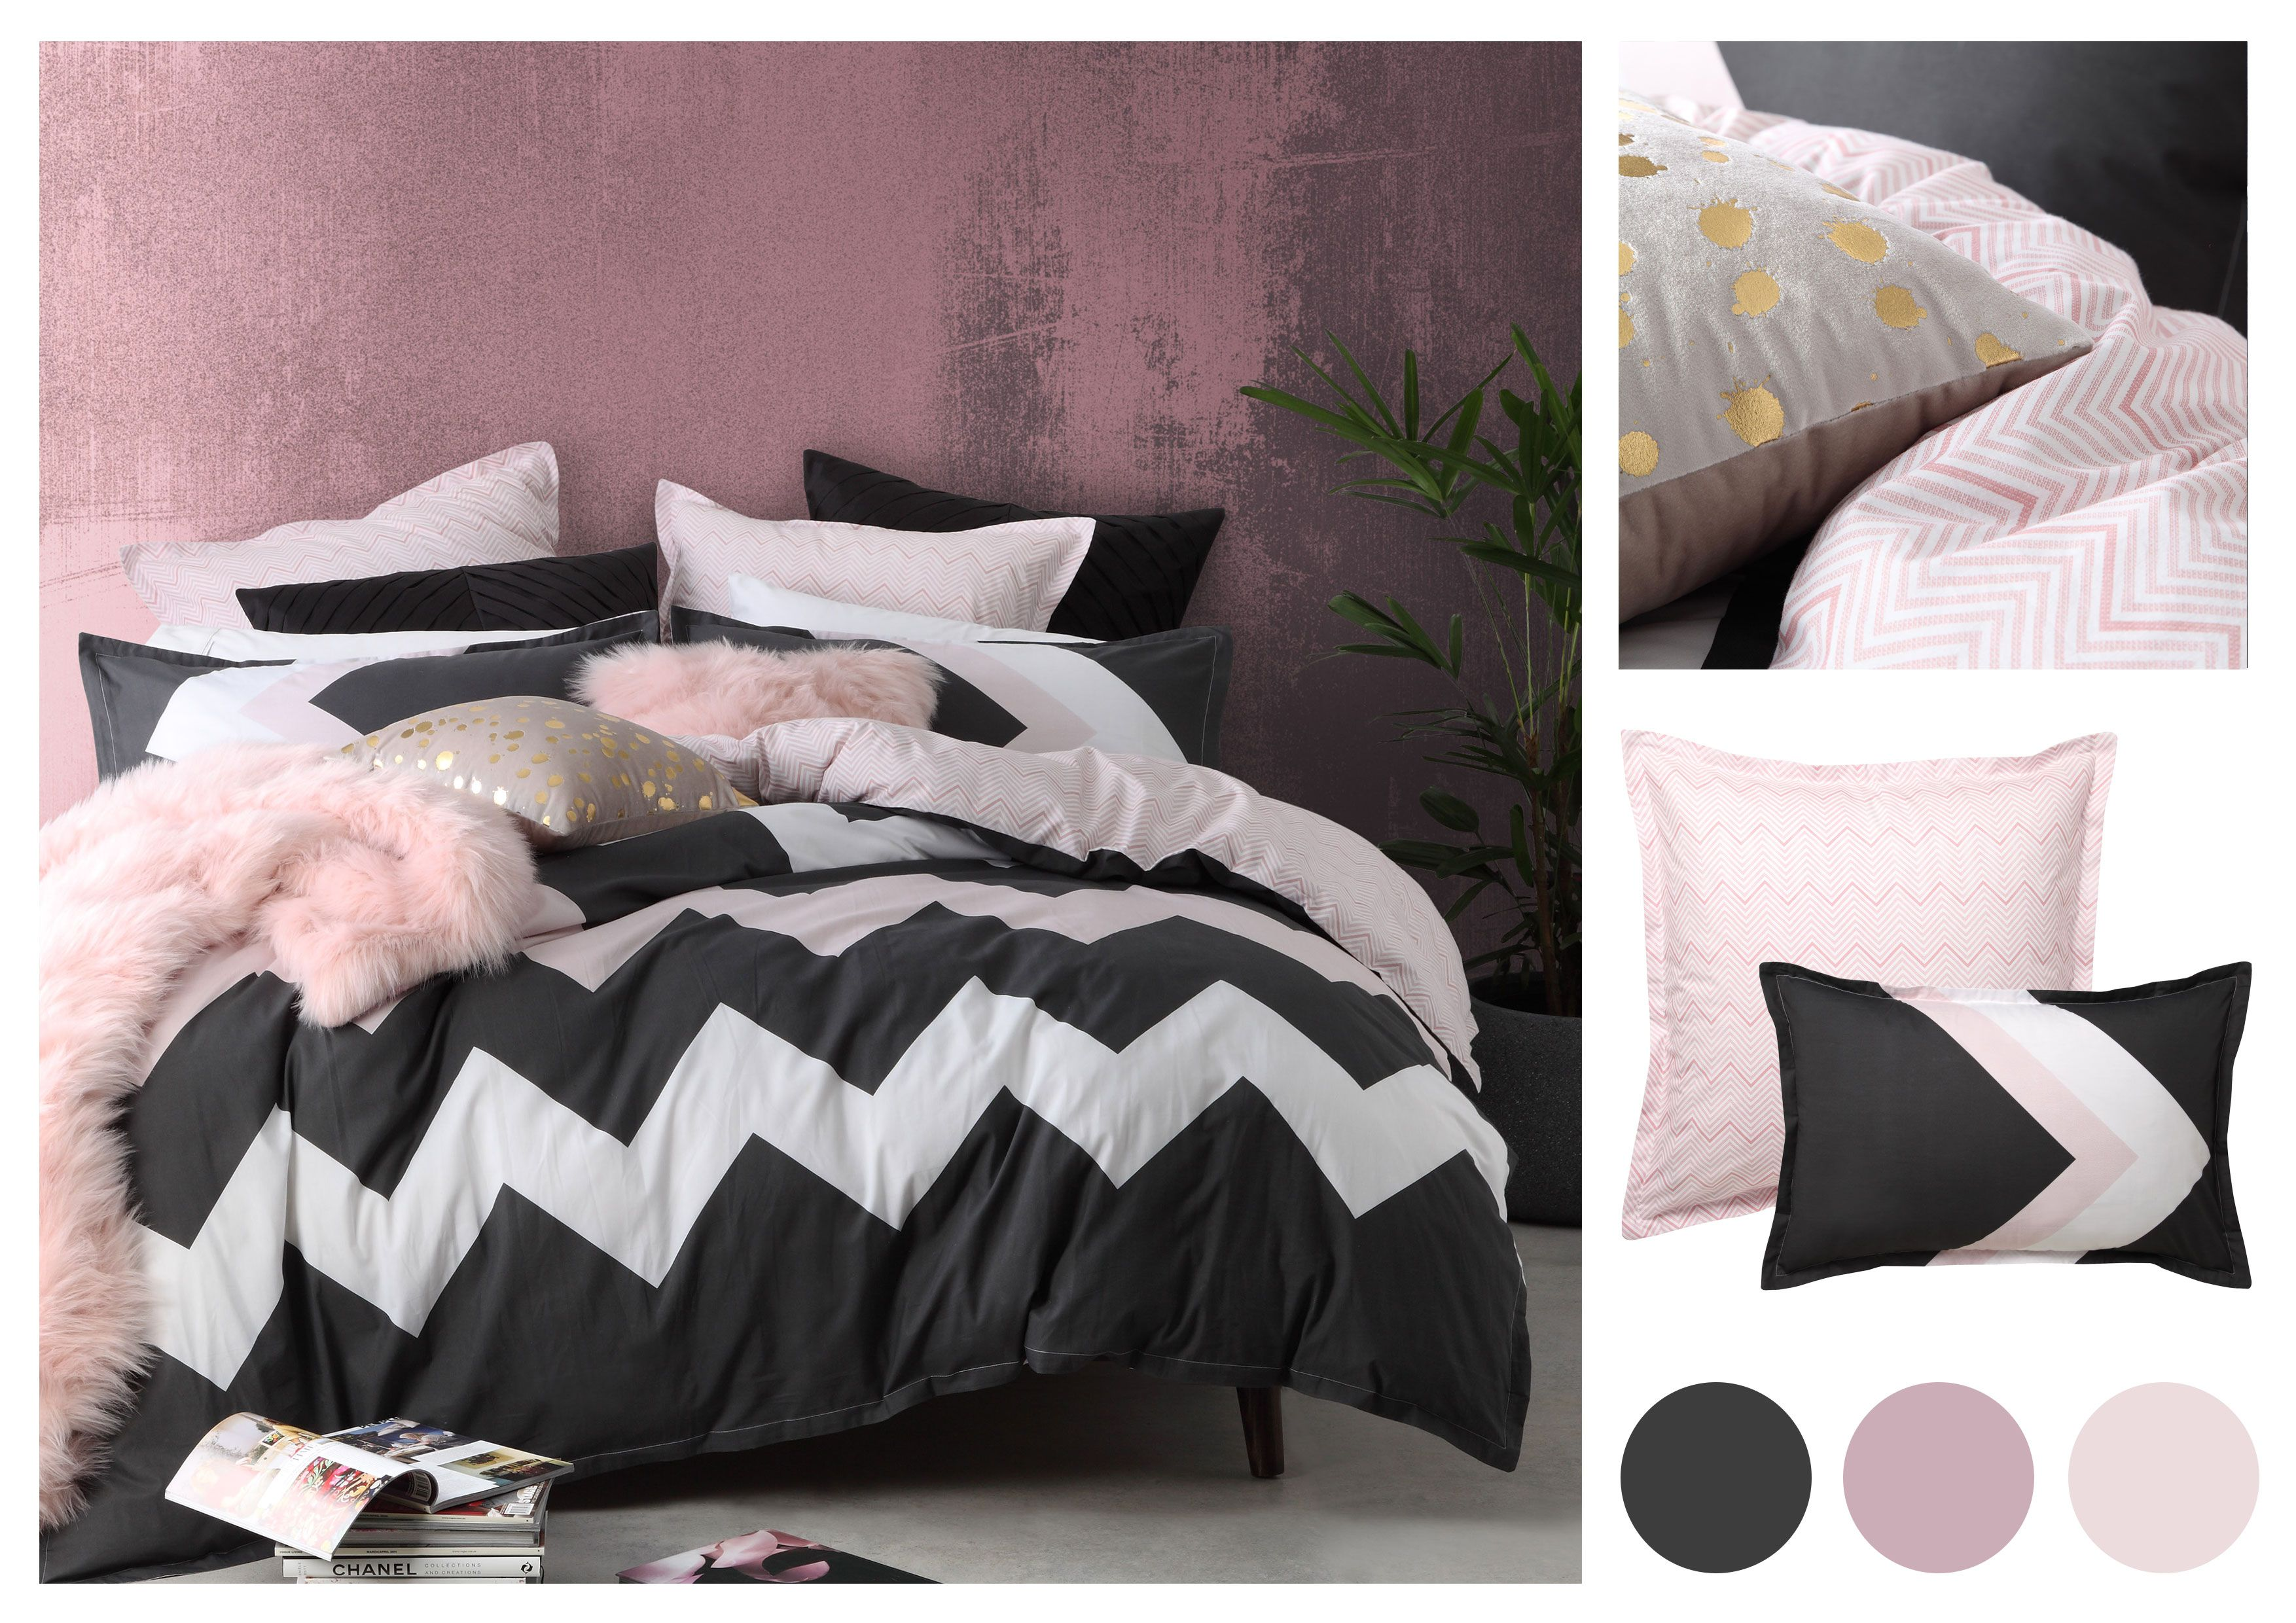 amazing piece cotton duvets dark light quilt comforter full set gray and patterned park covers madison print modern size duvet teal cover crawford xl of sets dorma doona pictures king palais queen single black stupendous twin bedding white grey nz chevron